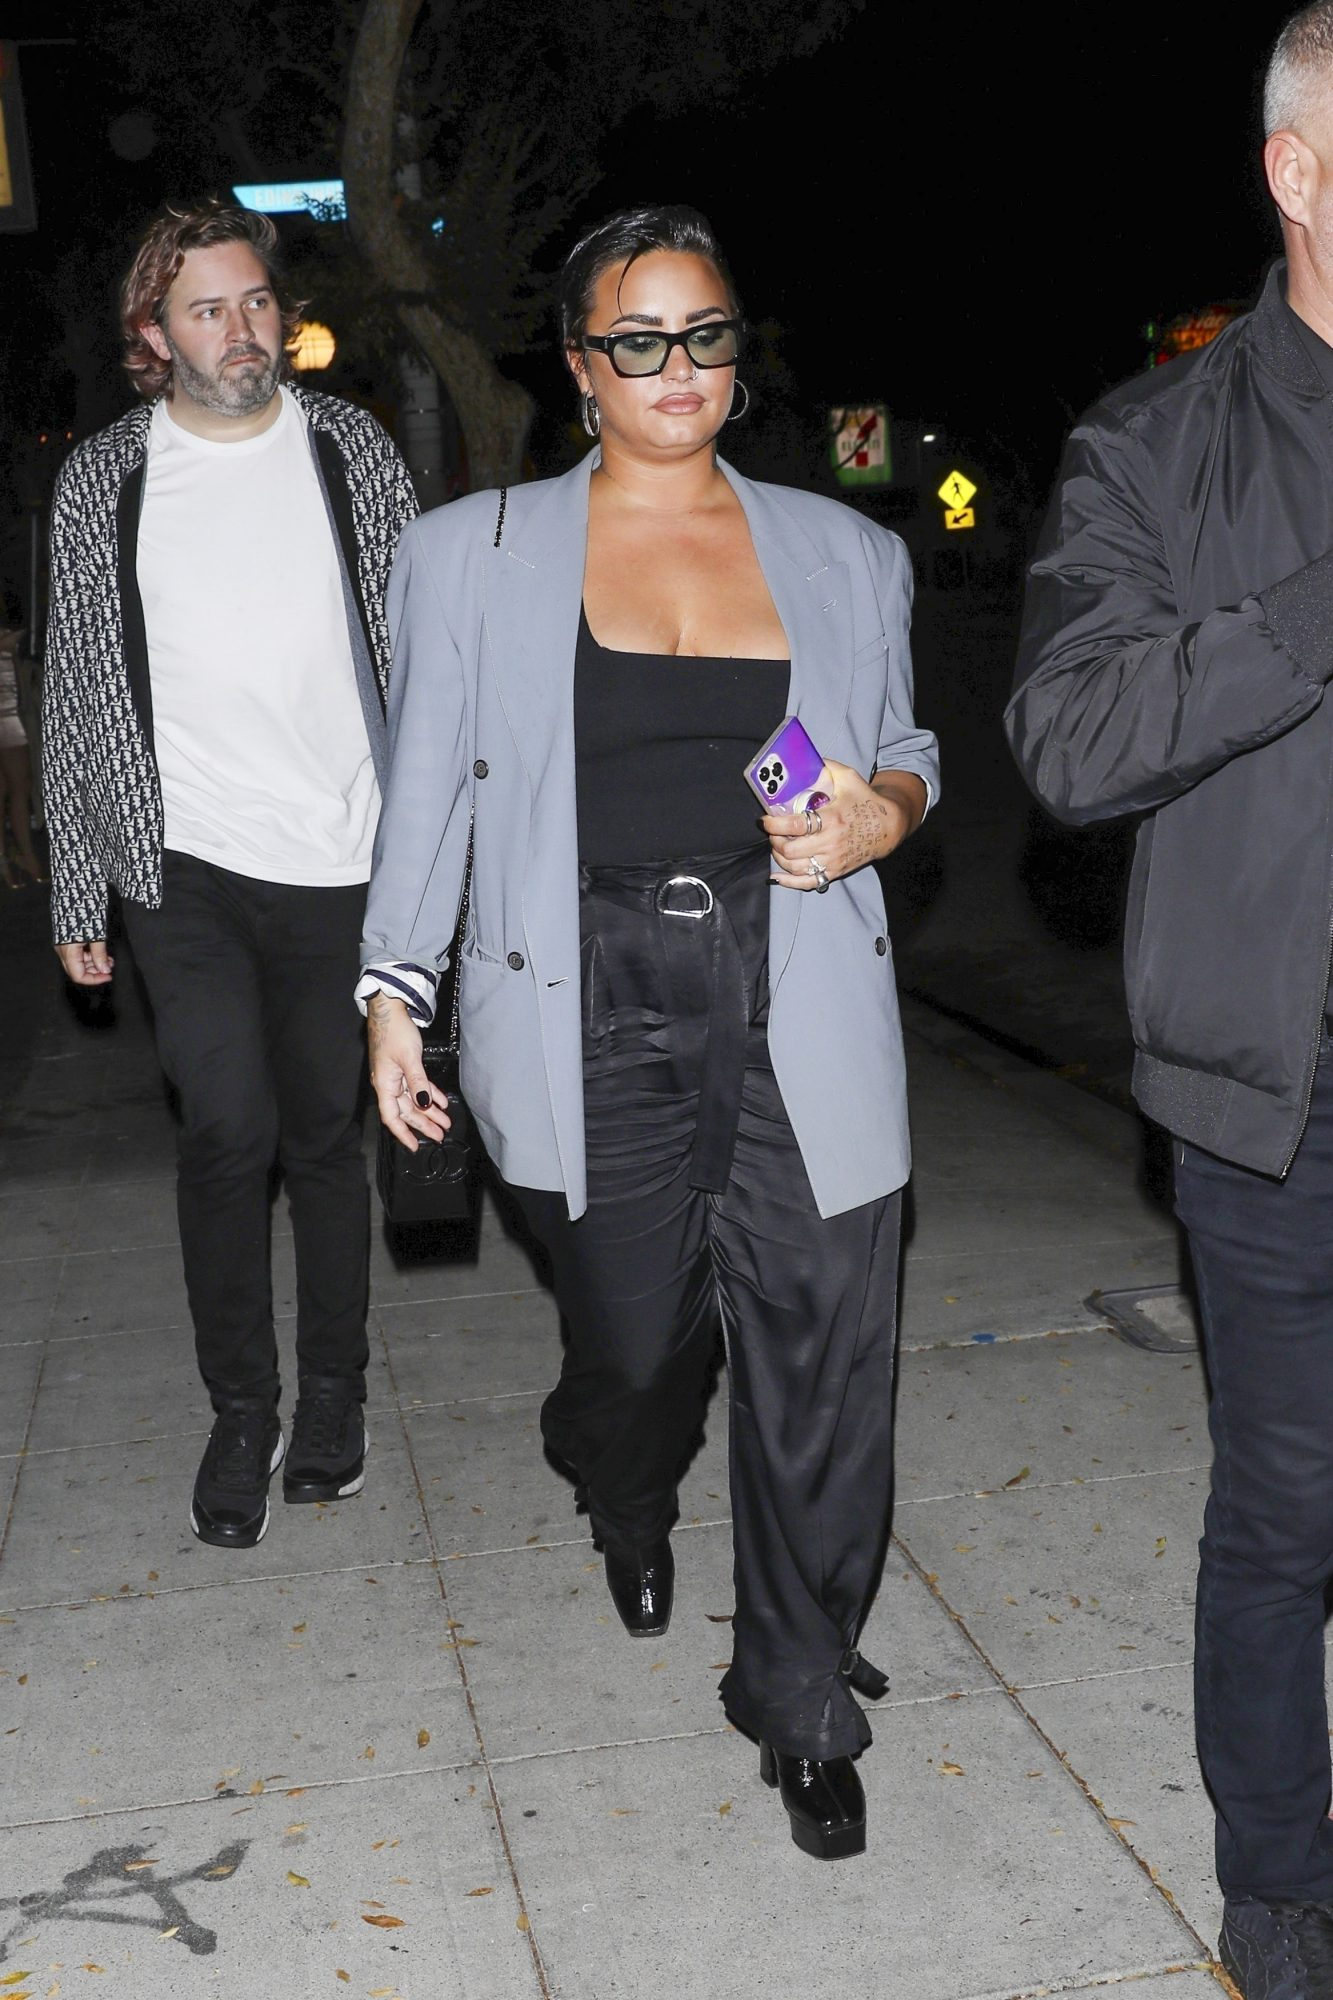 Demi Lovato Shows Off her Cleavage while Going to a Party in West Hollywood